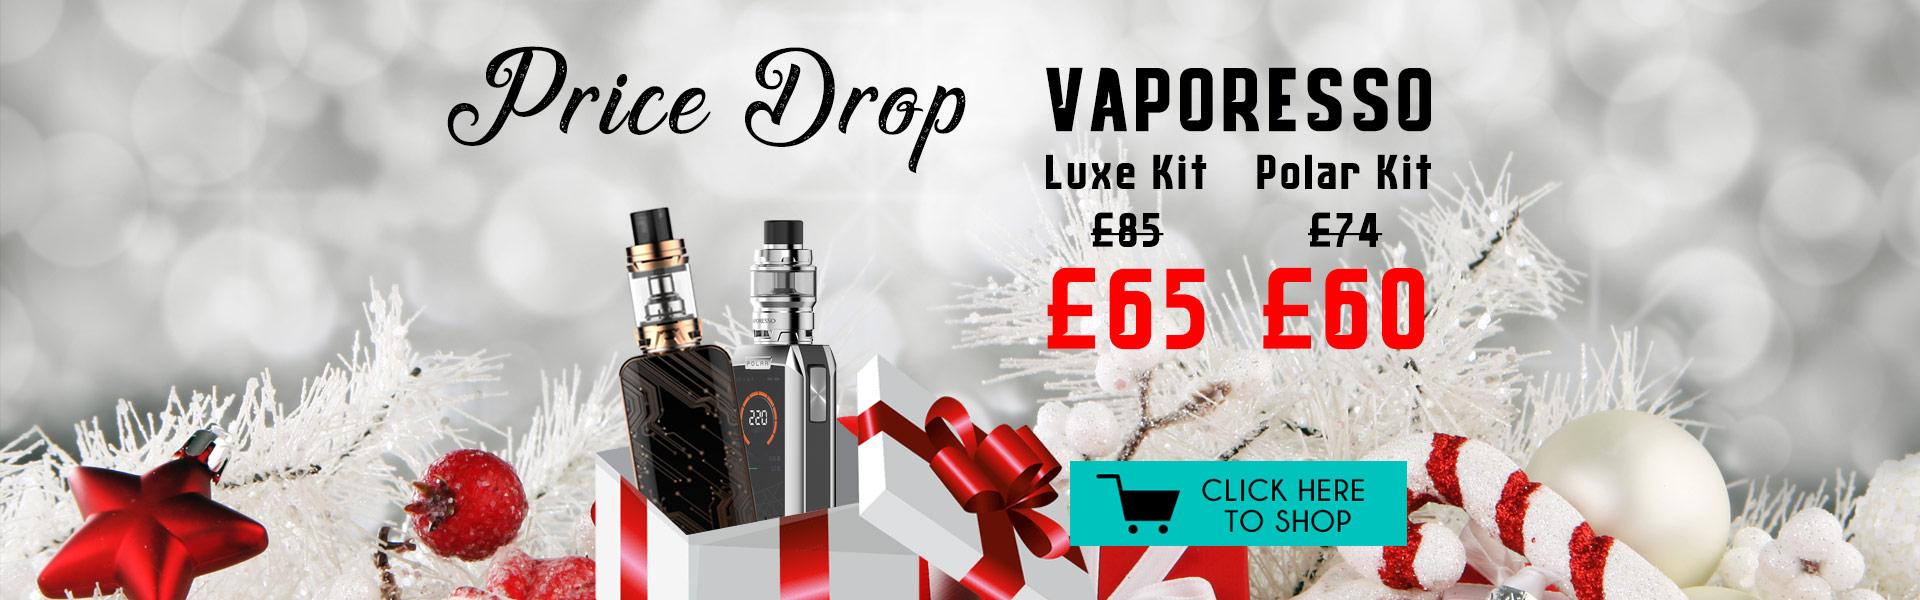 Vaporesso Price Drop